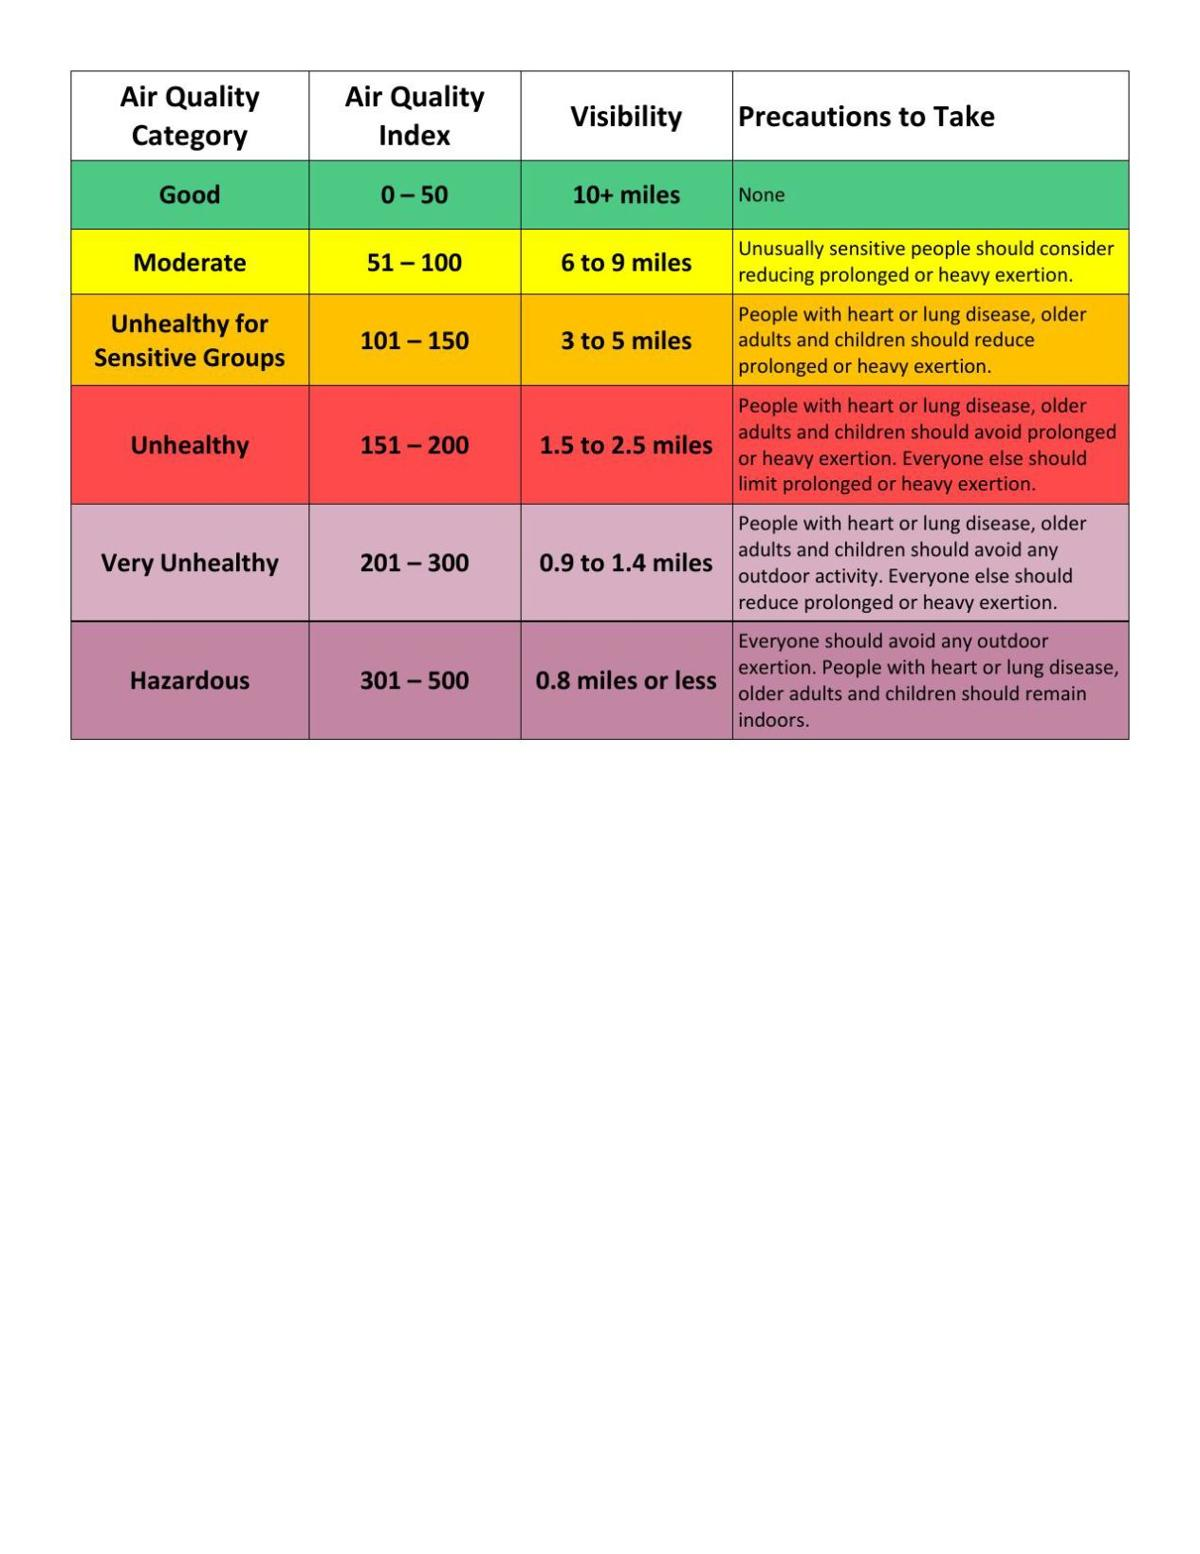 Air Quality Category Table